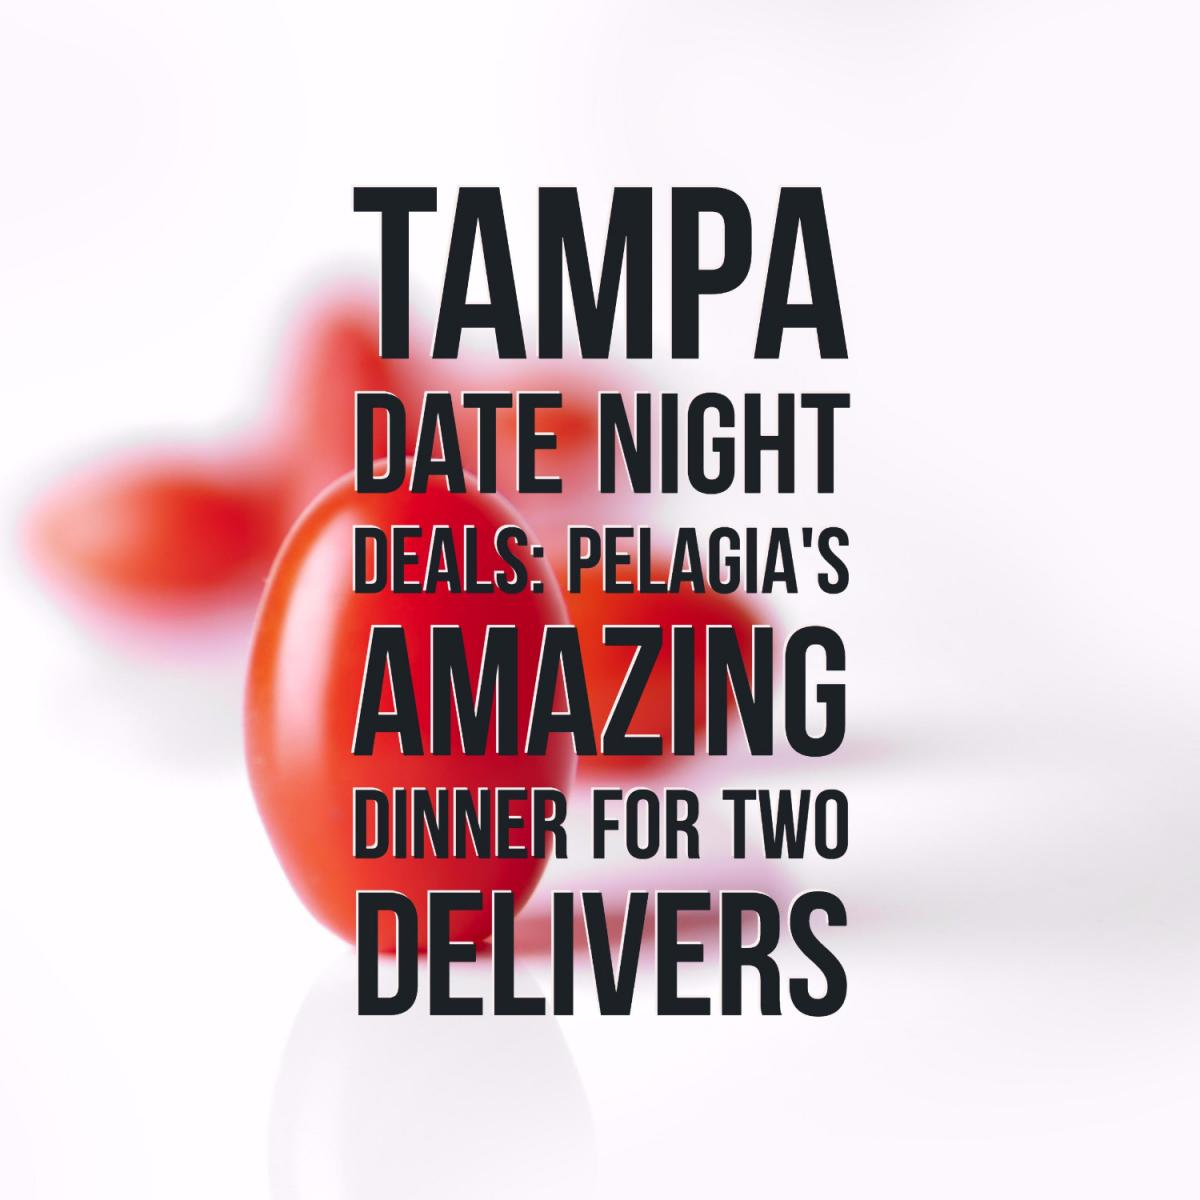 Tampa Date Night Deals: Pelagia's Amazing Dinner for Two Delivers